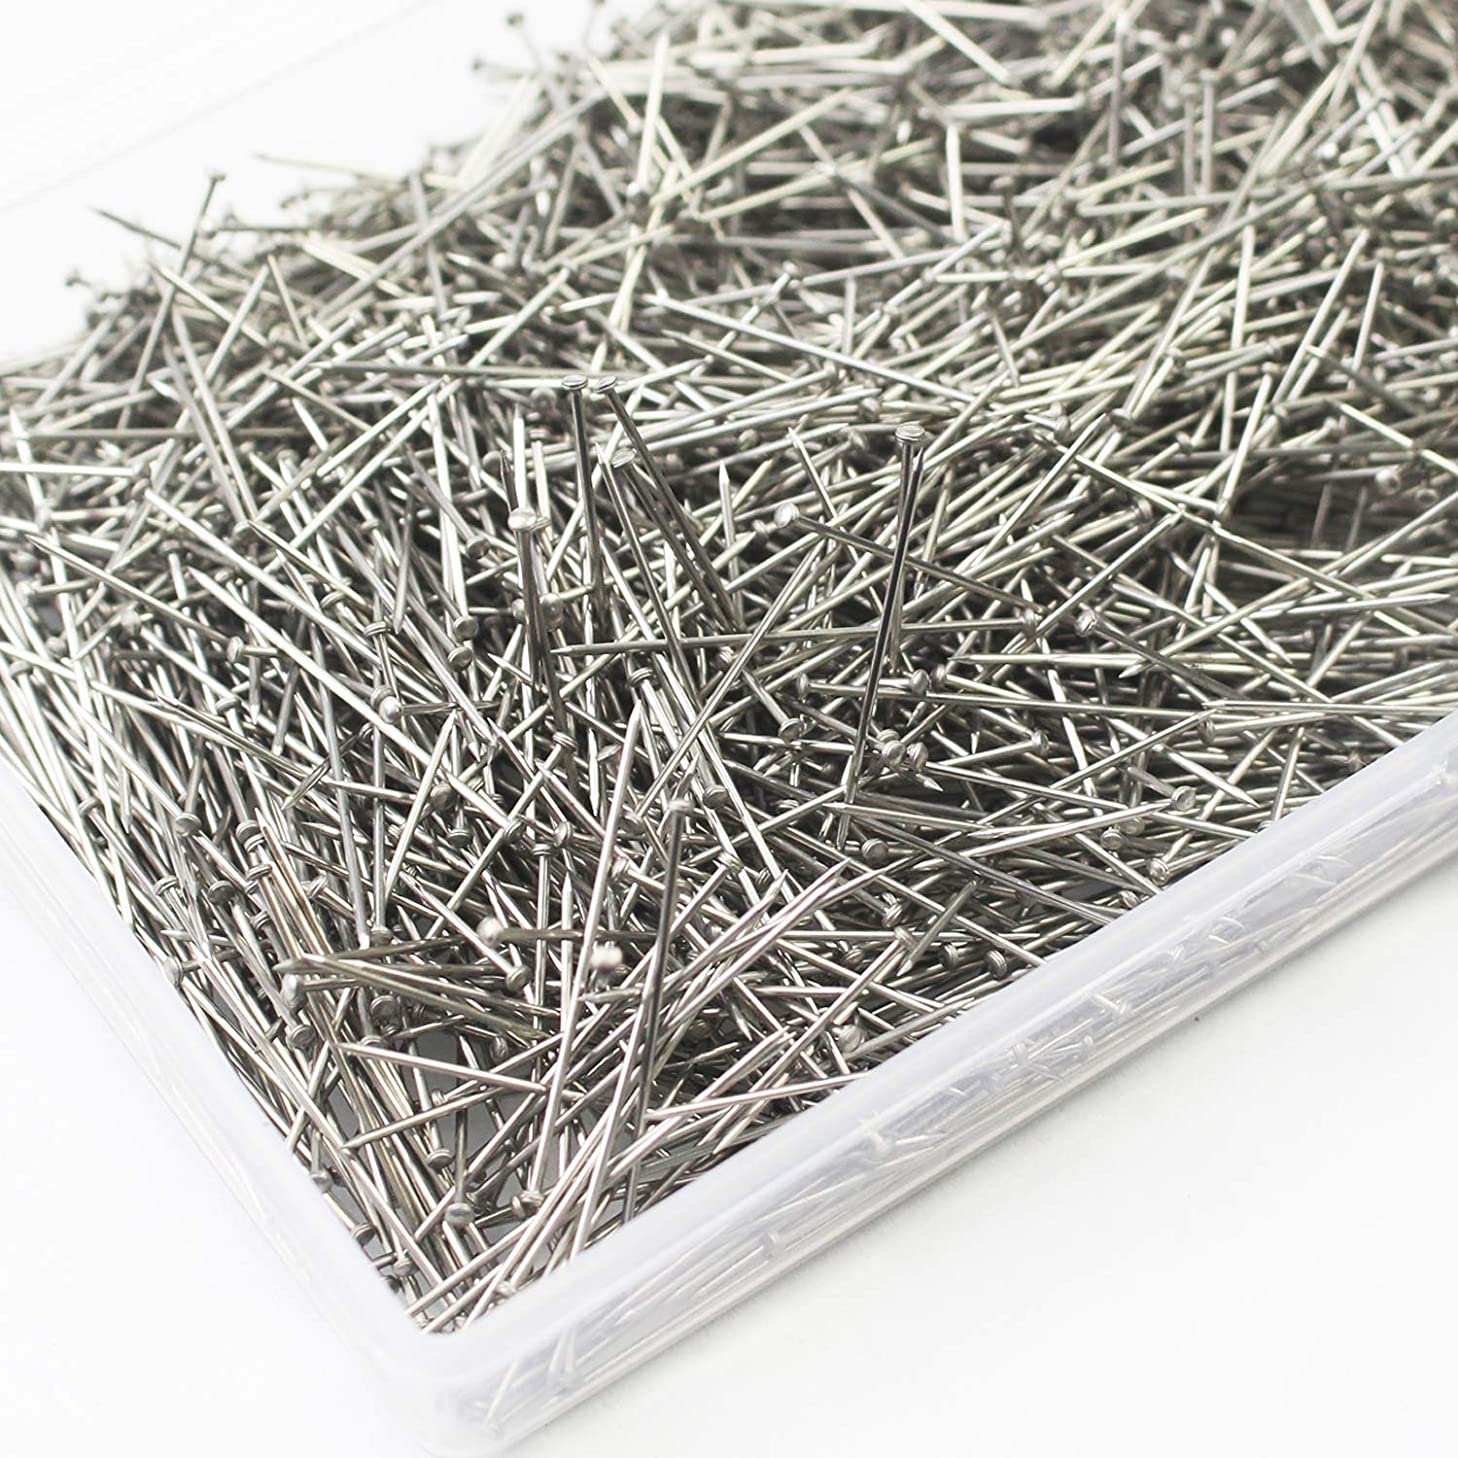 WeiMeet 2000 Pieces Stainless Steel Head Pins Fine Satin Pin Dressmaker Pins for Sewing Craft Jewelry Making